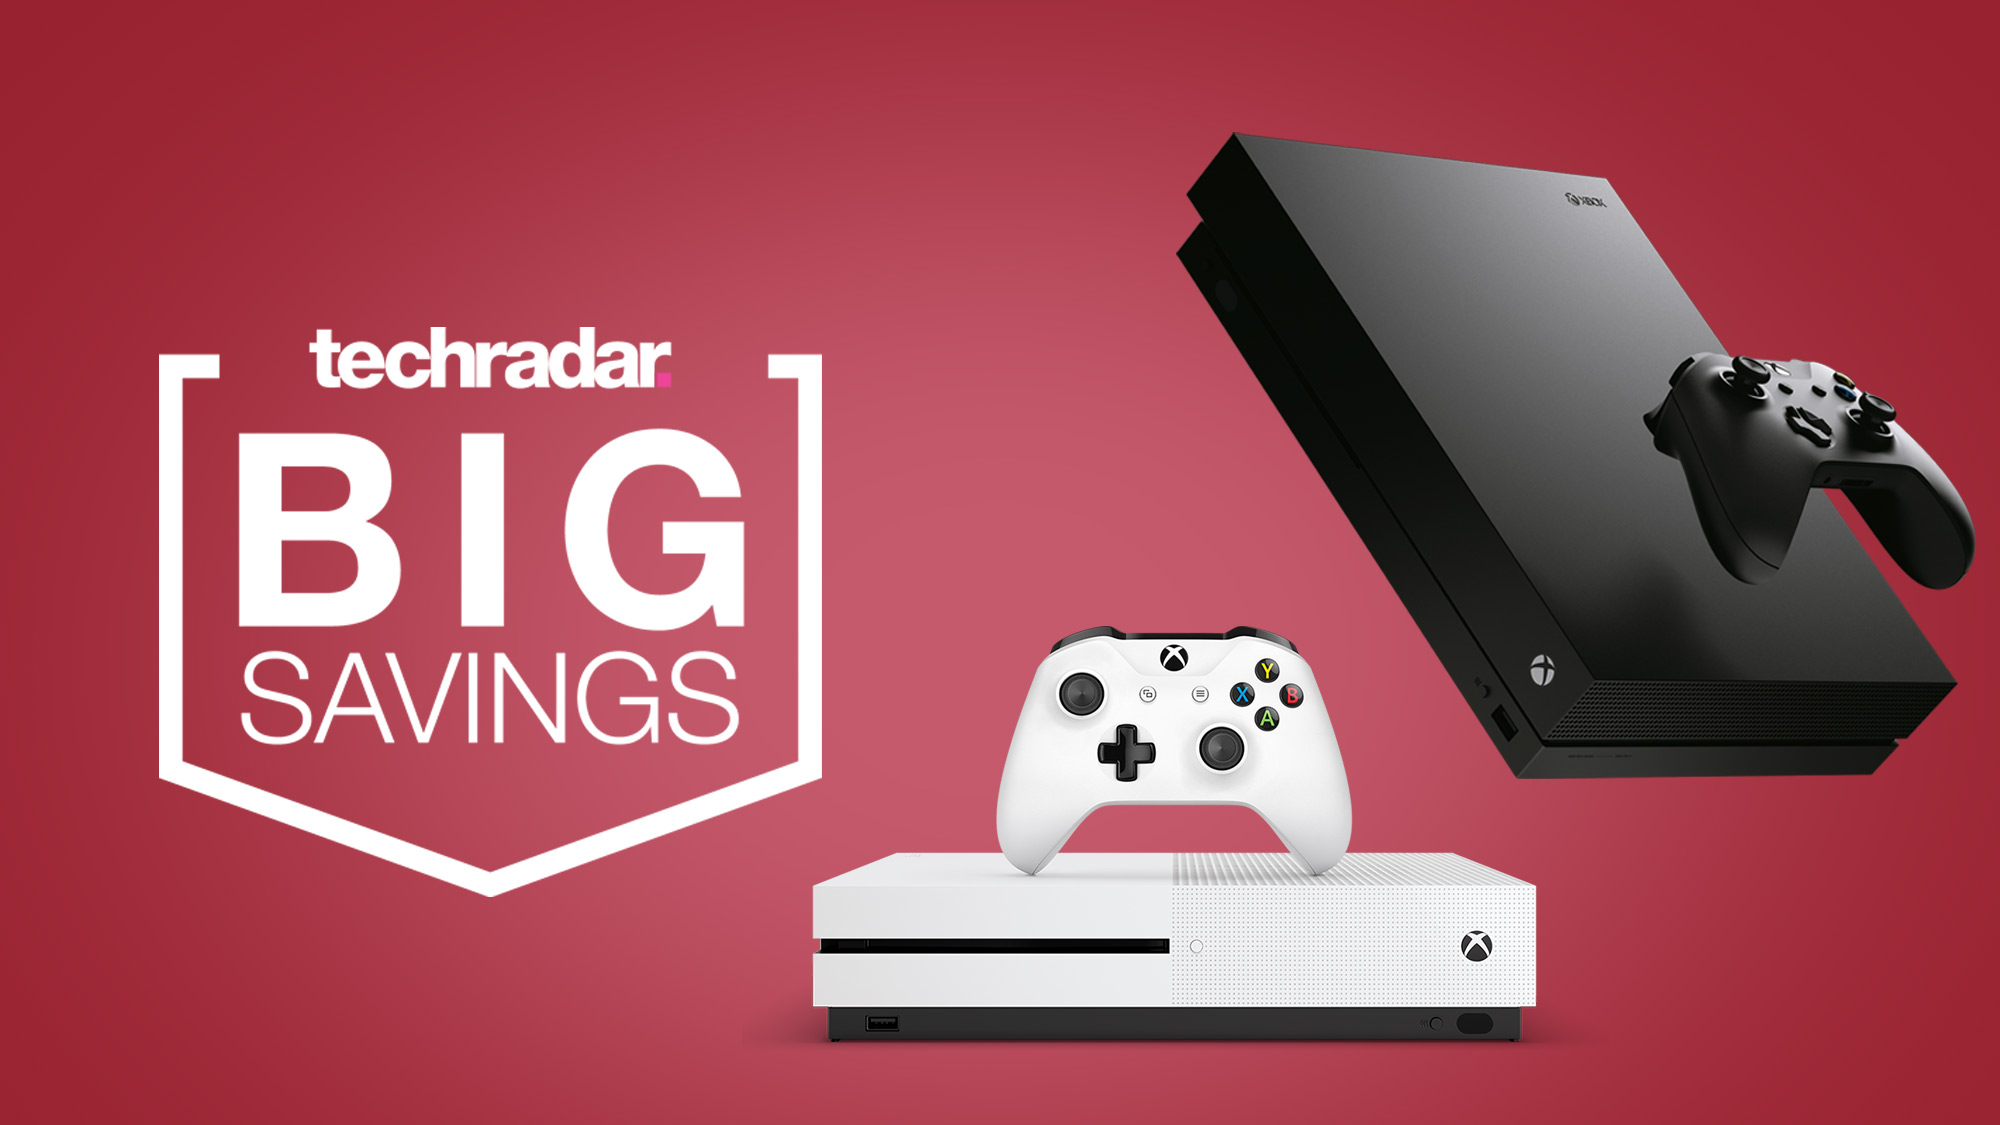 These Stunning Xbox One Deals Are Slashing Prices Across The Full